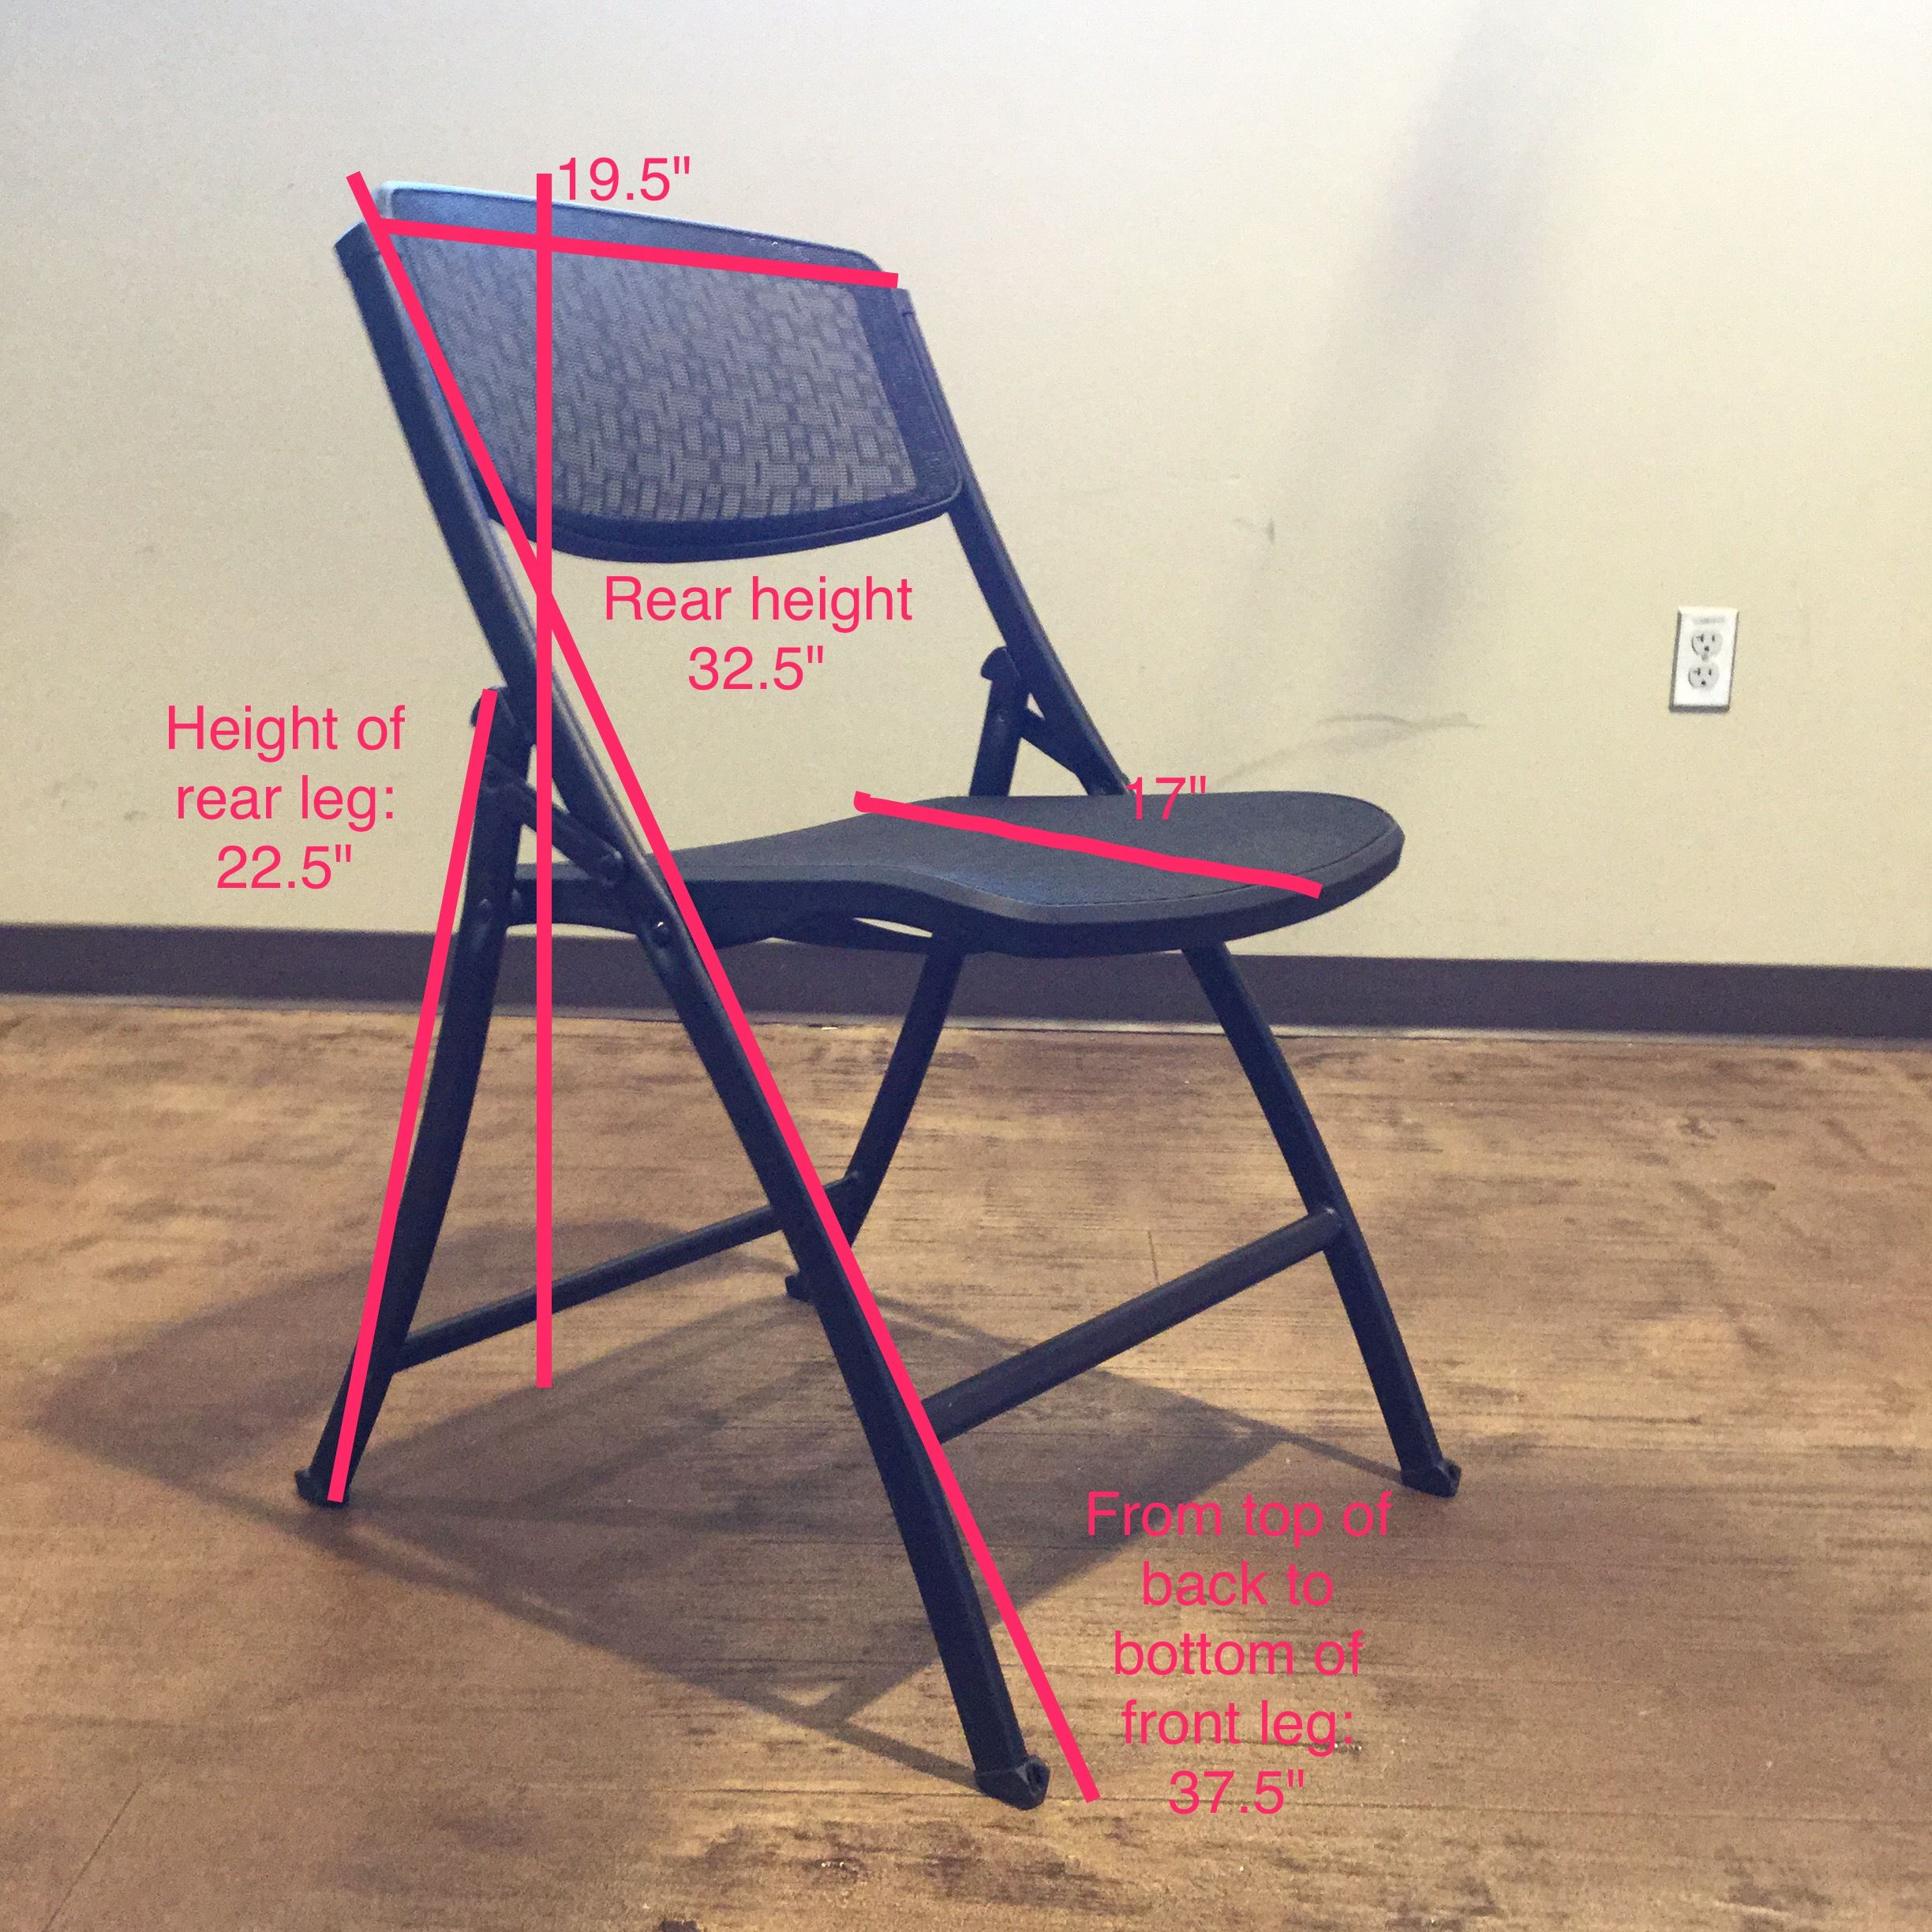 Folding chair with measurements